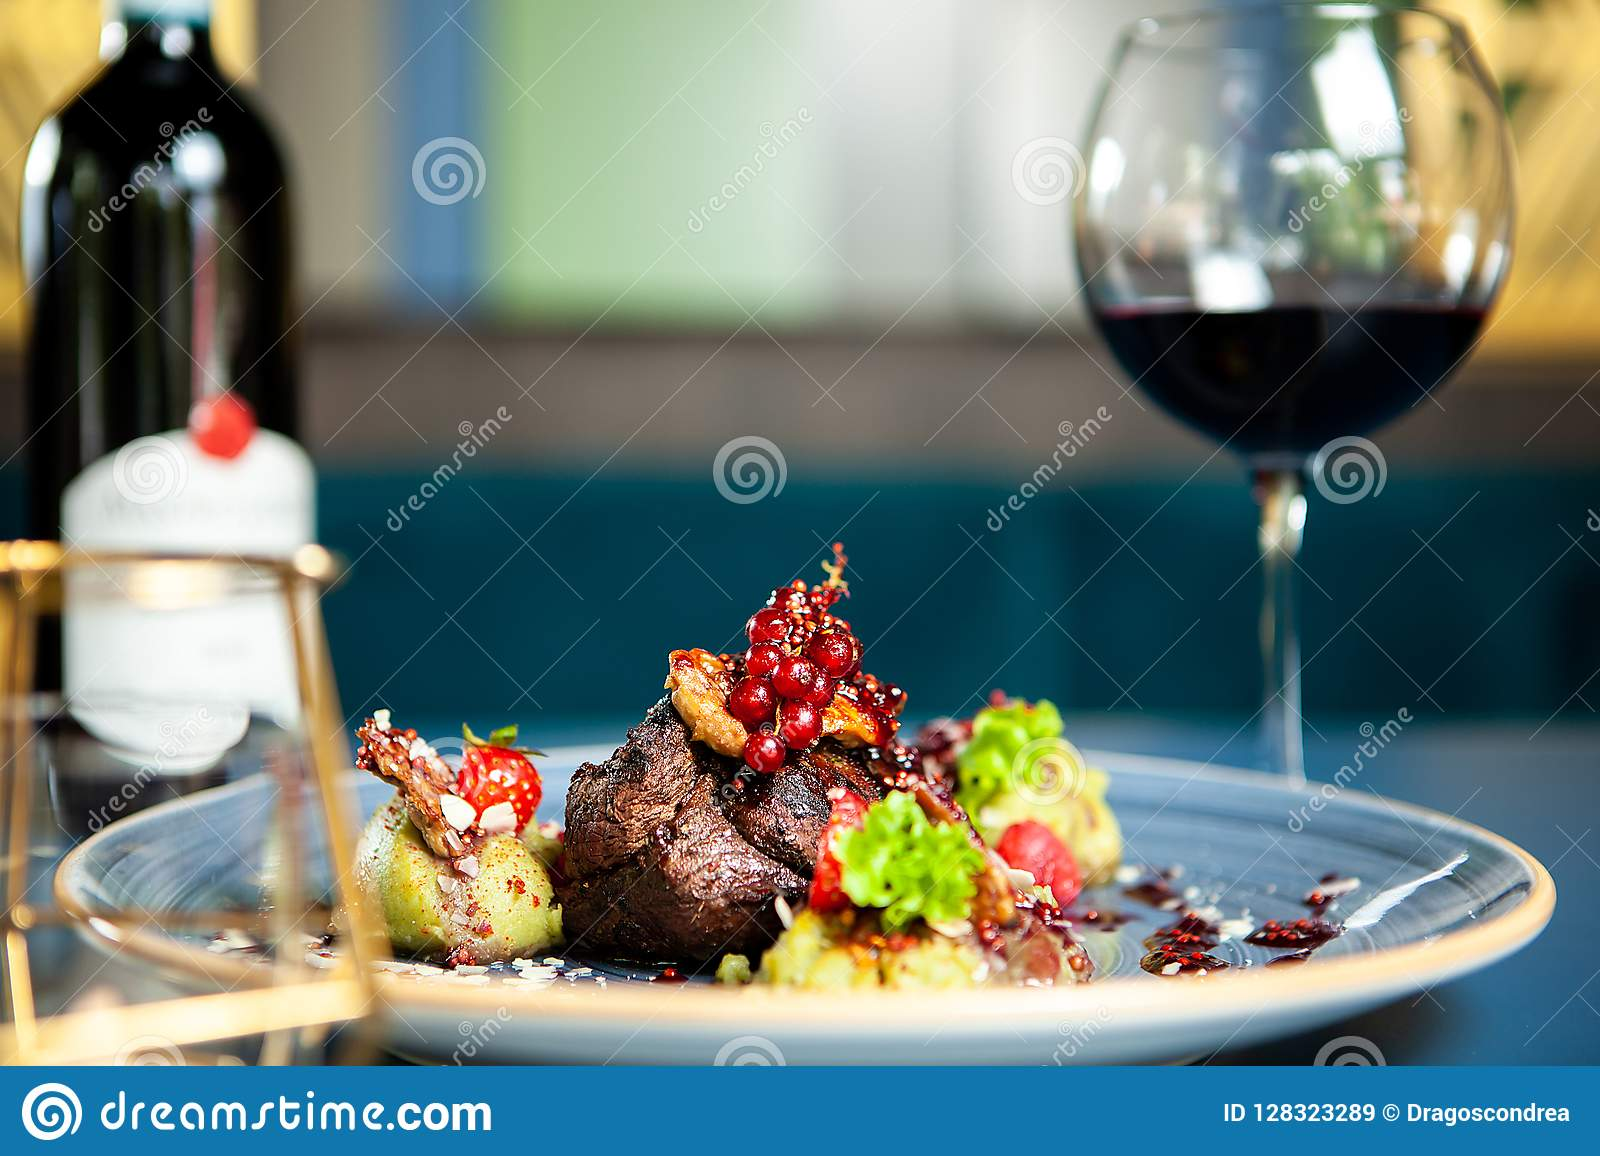 Fine Dining Grilled Steak With Vegetables Stock Image ...